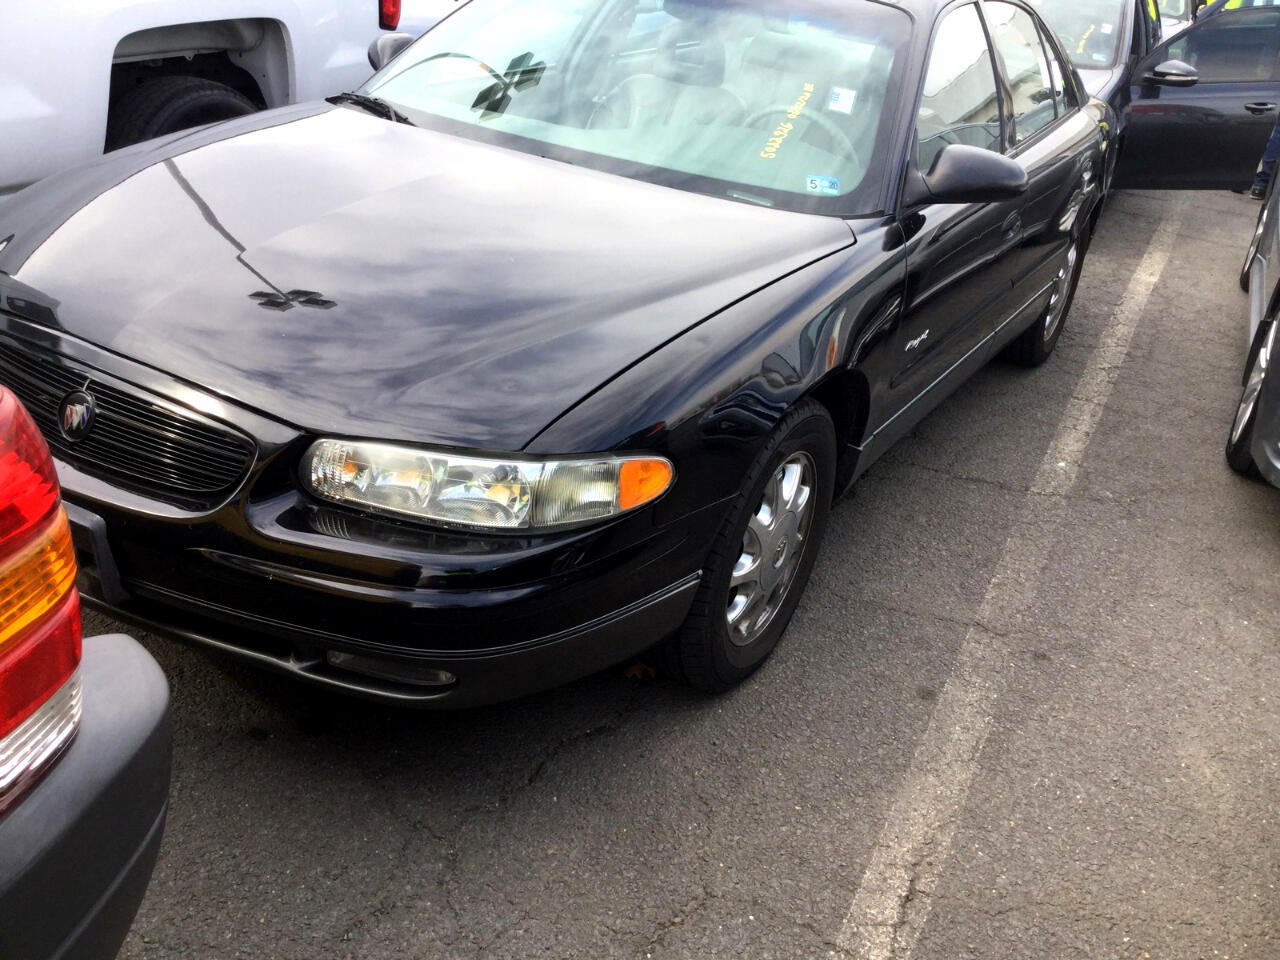 Buick Regal 4dr Sdn GS 2000